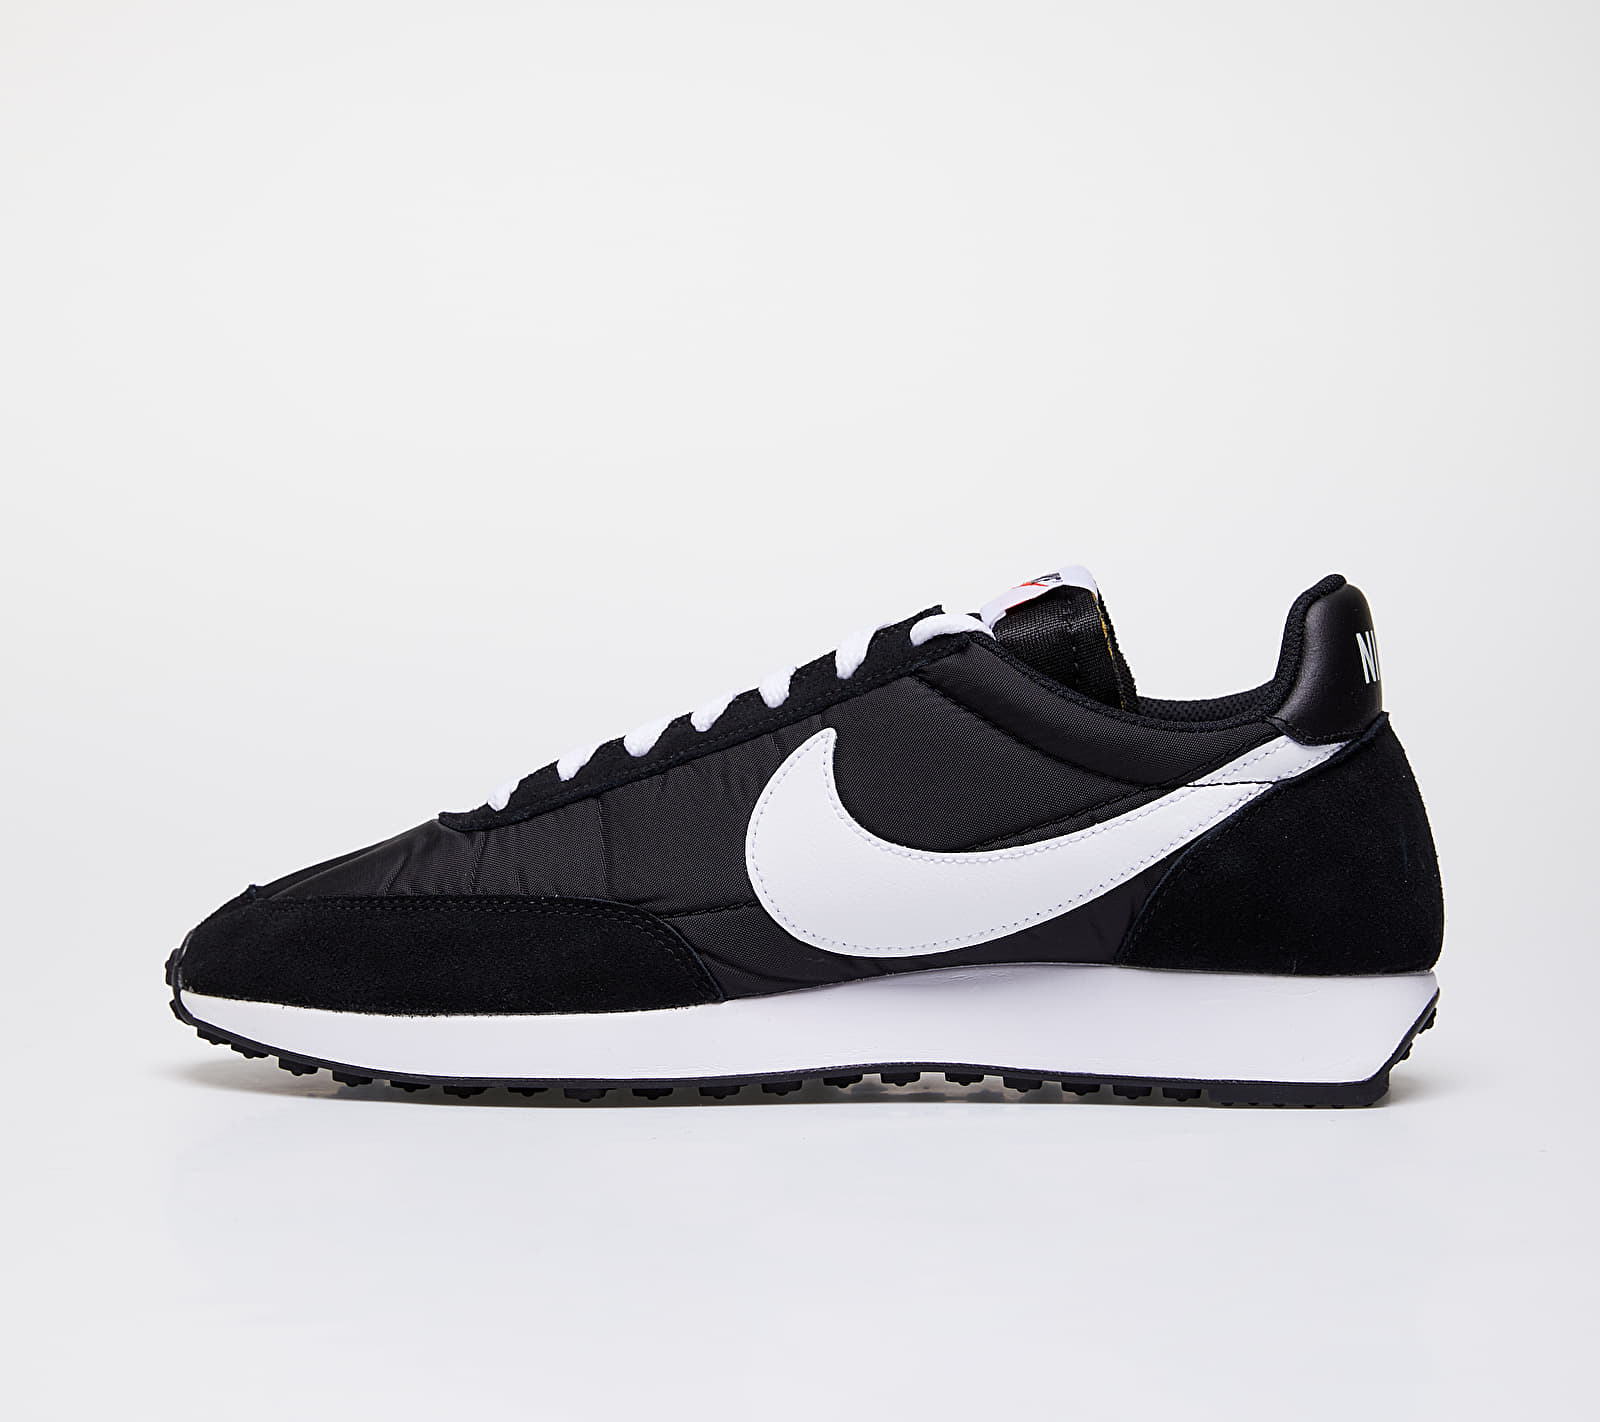 Nike Air Tailwind 79 Black/ White-Team Orange EUR 45.5